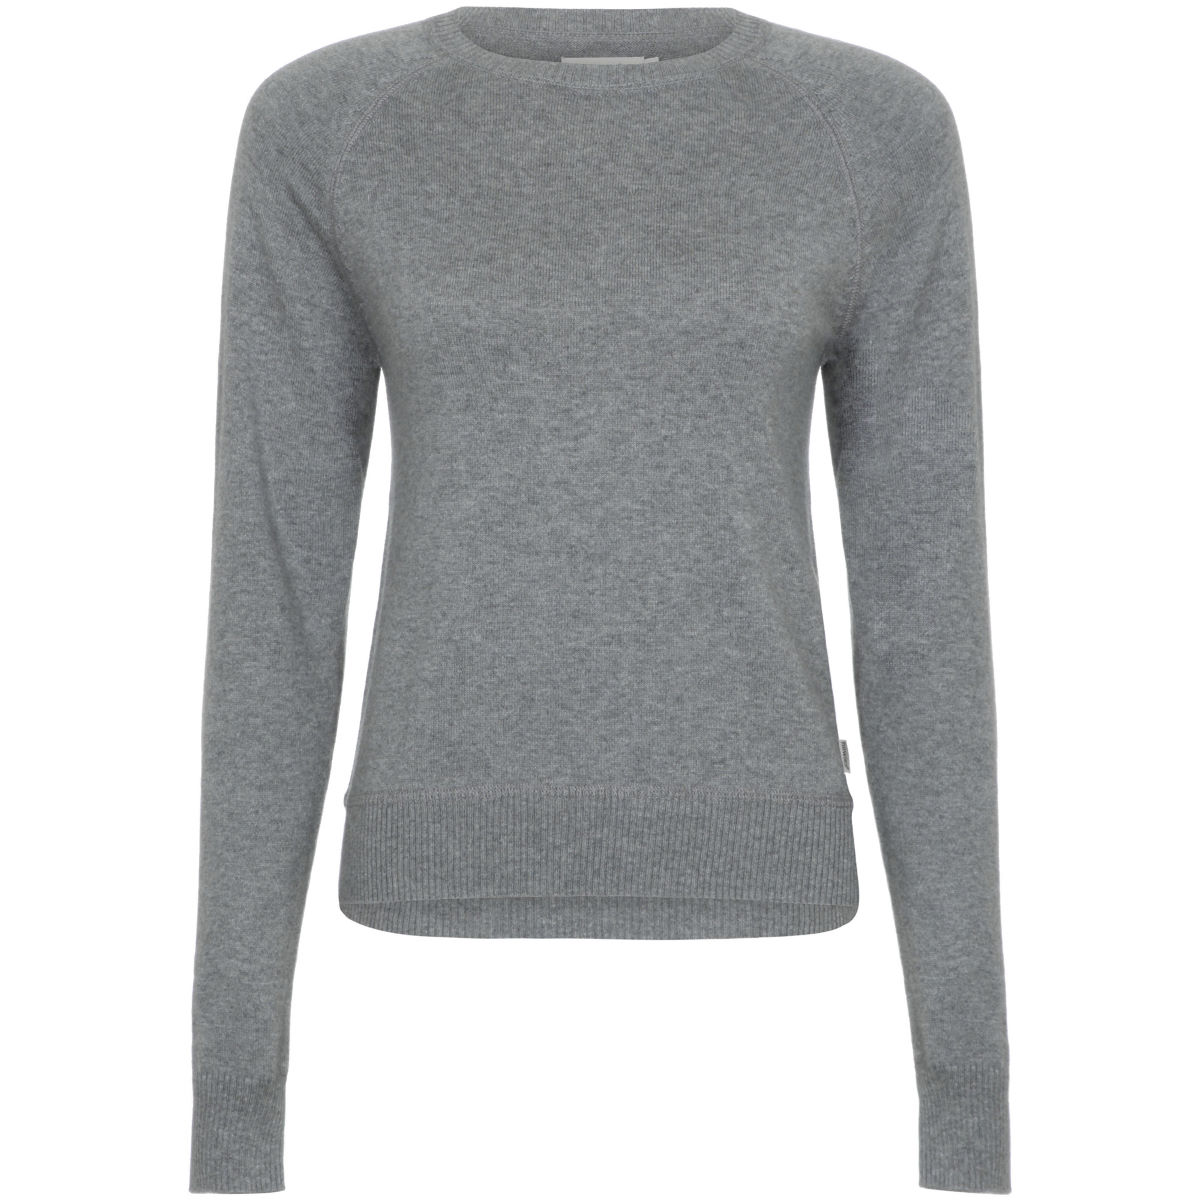 Pull Femme howies Knice - 12 Grey Marl Maillots de loisirs